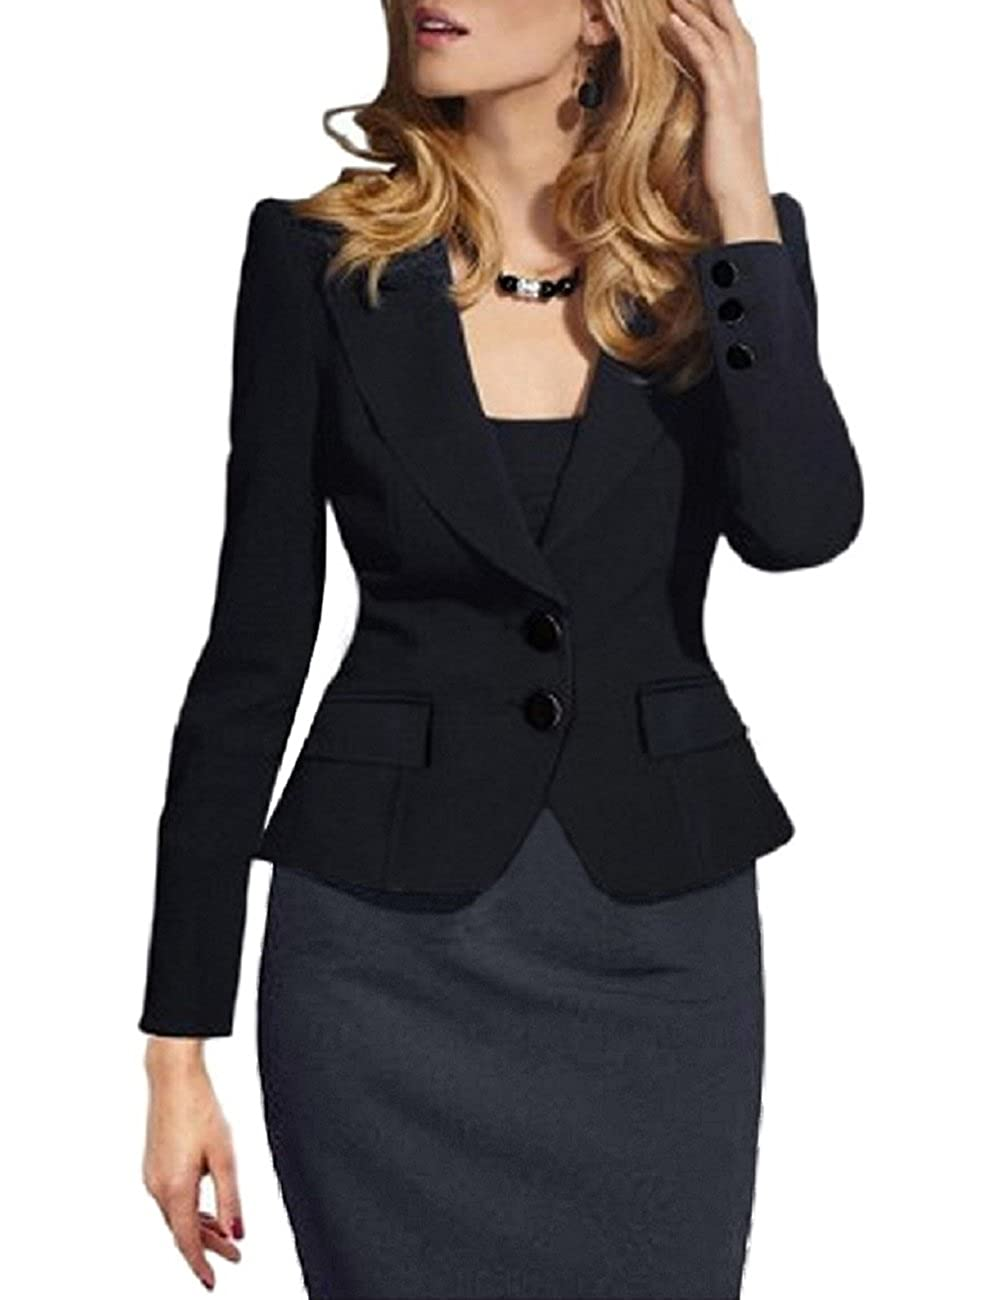 ba8044bec0f SEBOWEL Women s Formal Two Button Slim Fitted Office Work Blazers Jackets  Suits Plus Size S-3X at Amazon Women s Clothing store